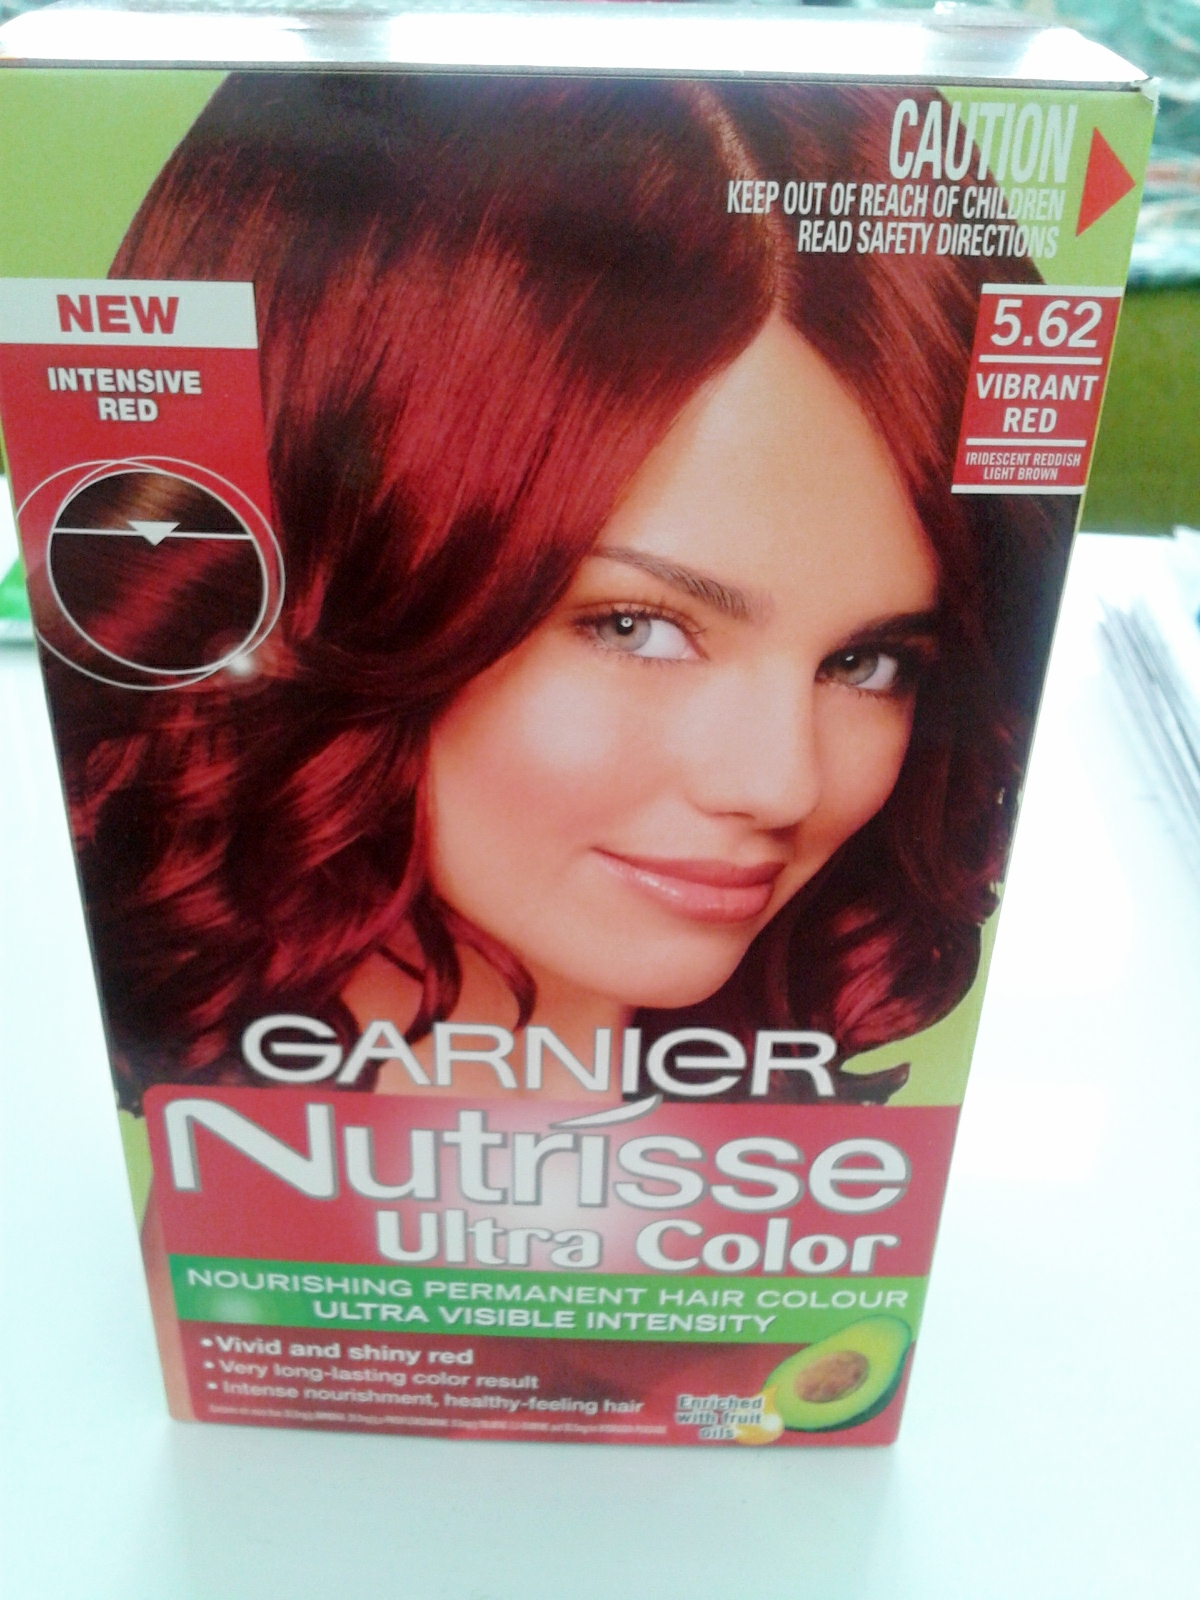 Garnier Nutrisse Ultra Color Mapleclouds